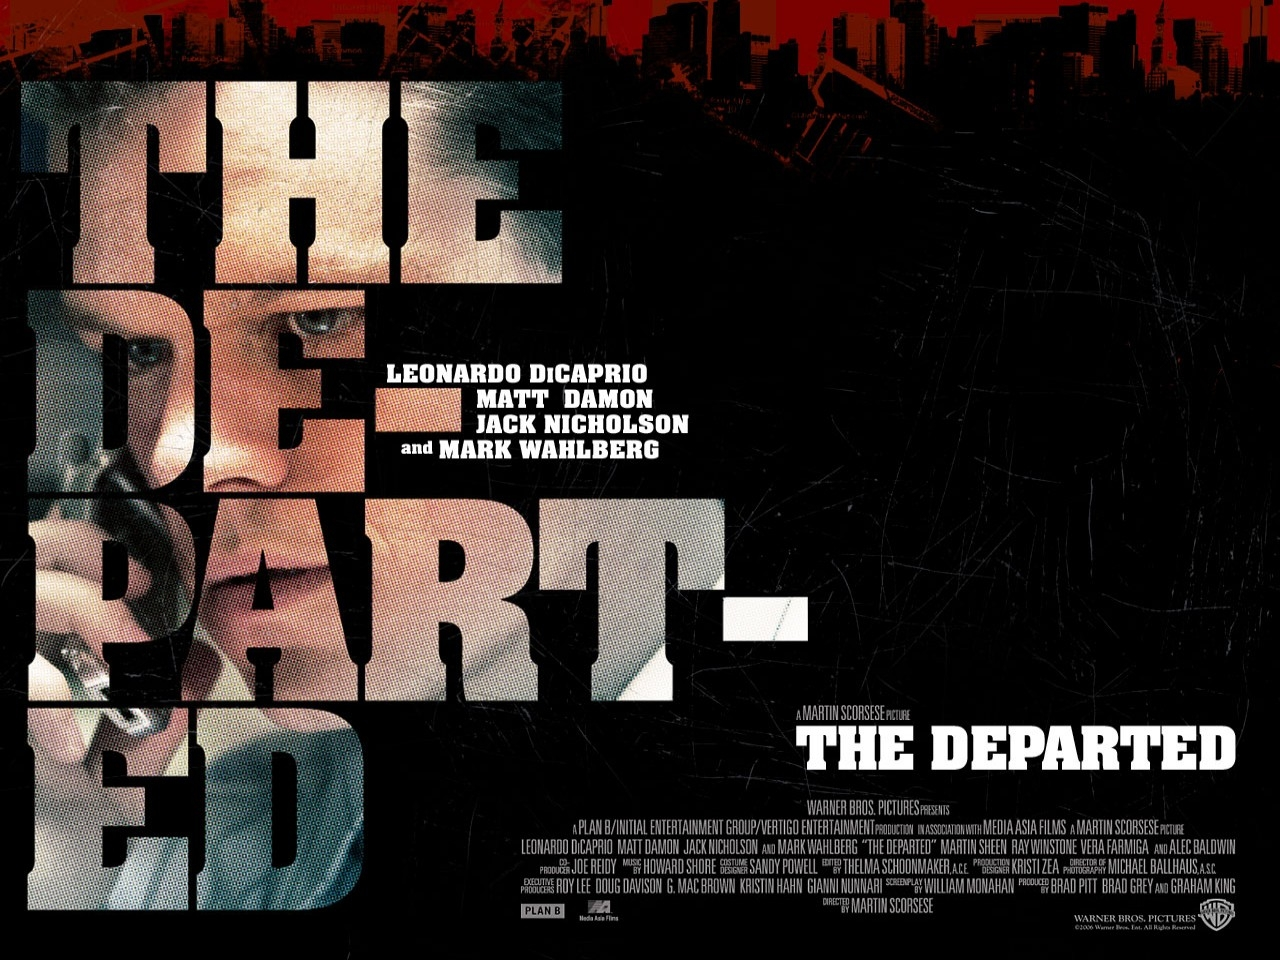 Wallpaper del film The Departed - Il bene e il male con Damon